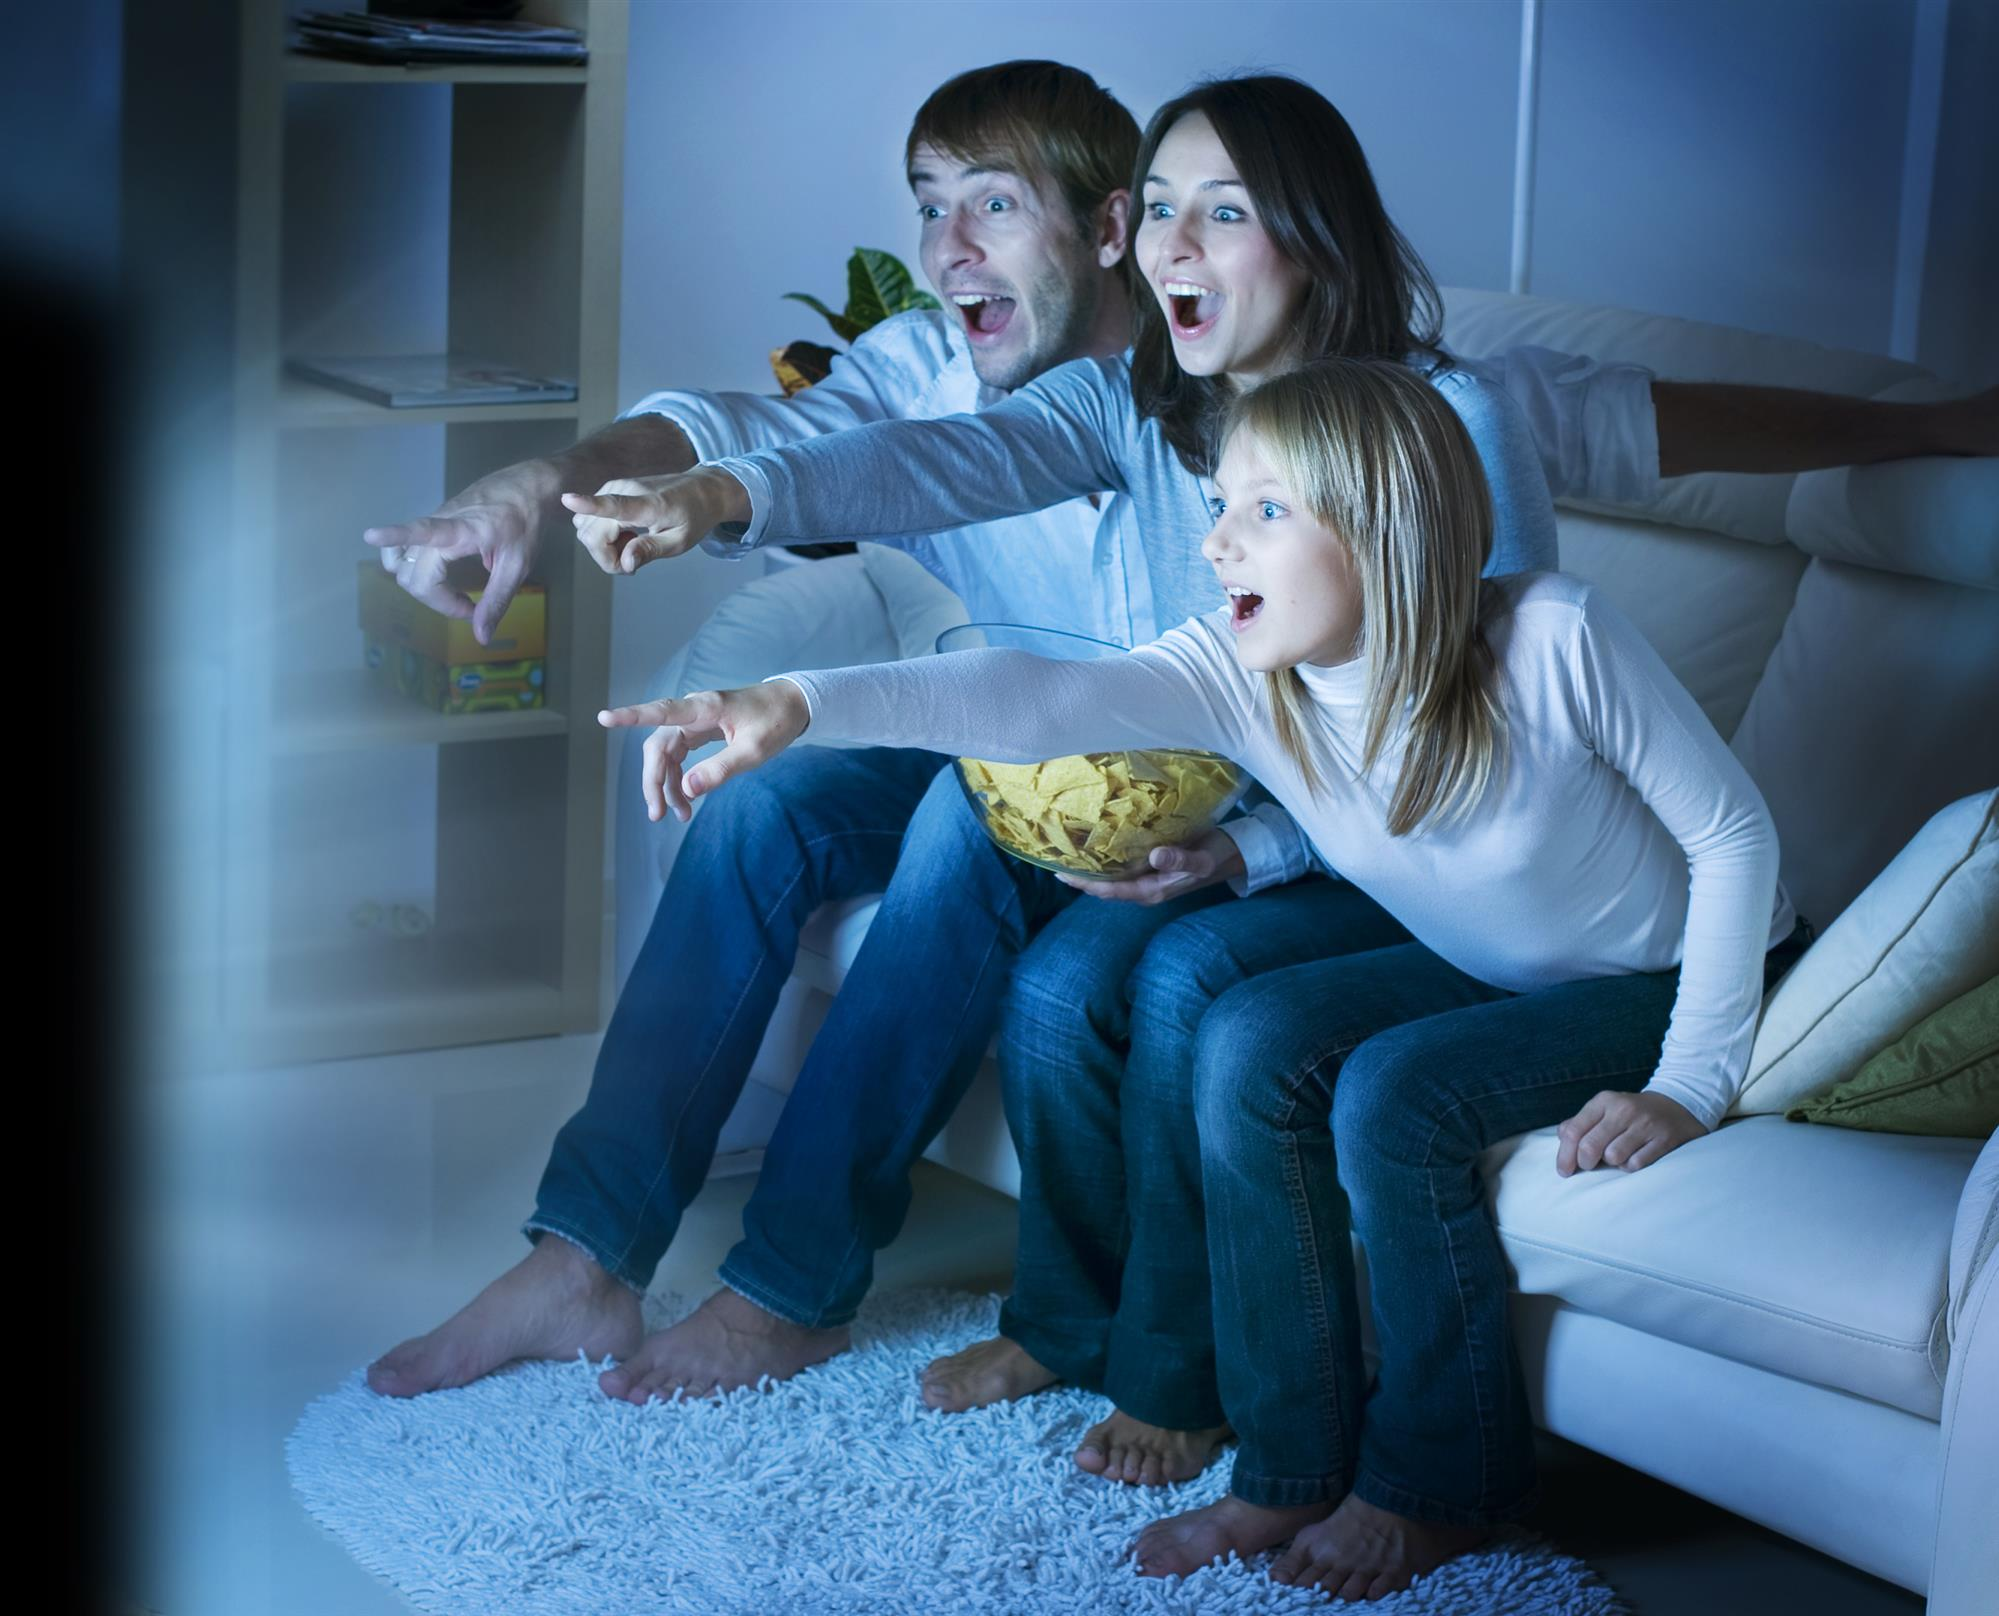 watching television is an experience shared 13 sites to watch latest tv shows online free full episodes [2018] august 8, 2018 , by charles today's generation is very much into the smartphone, and humans have become walking robots for watching their favorite tv shows on mobile rather than to watch them on tv.